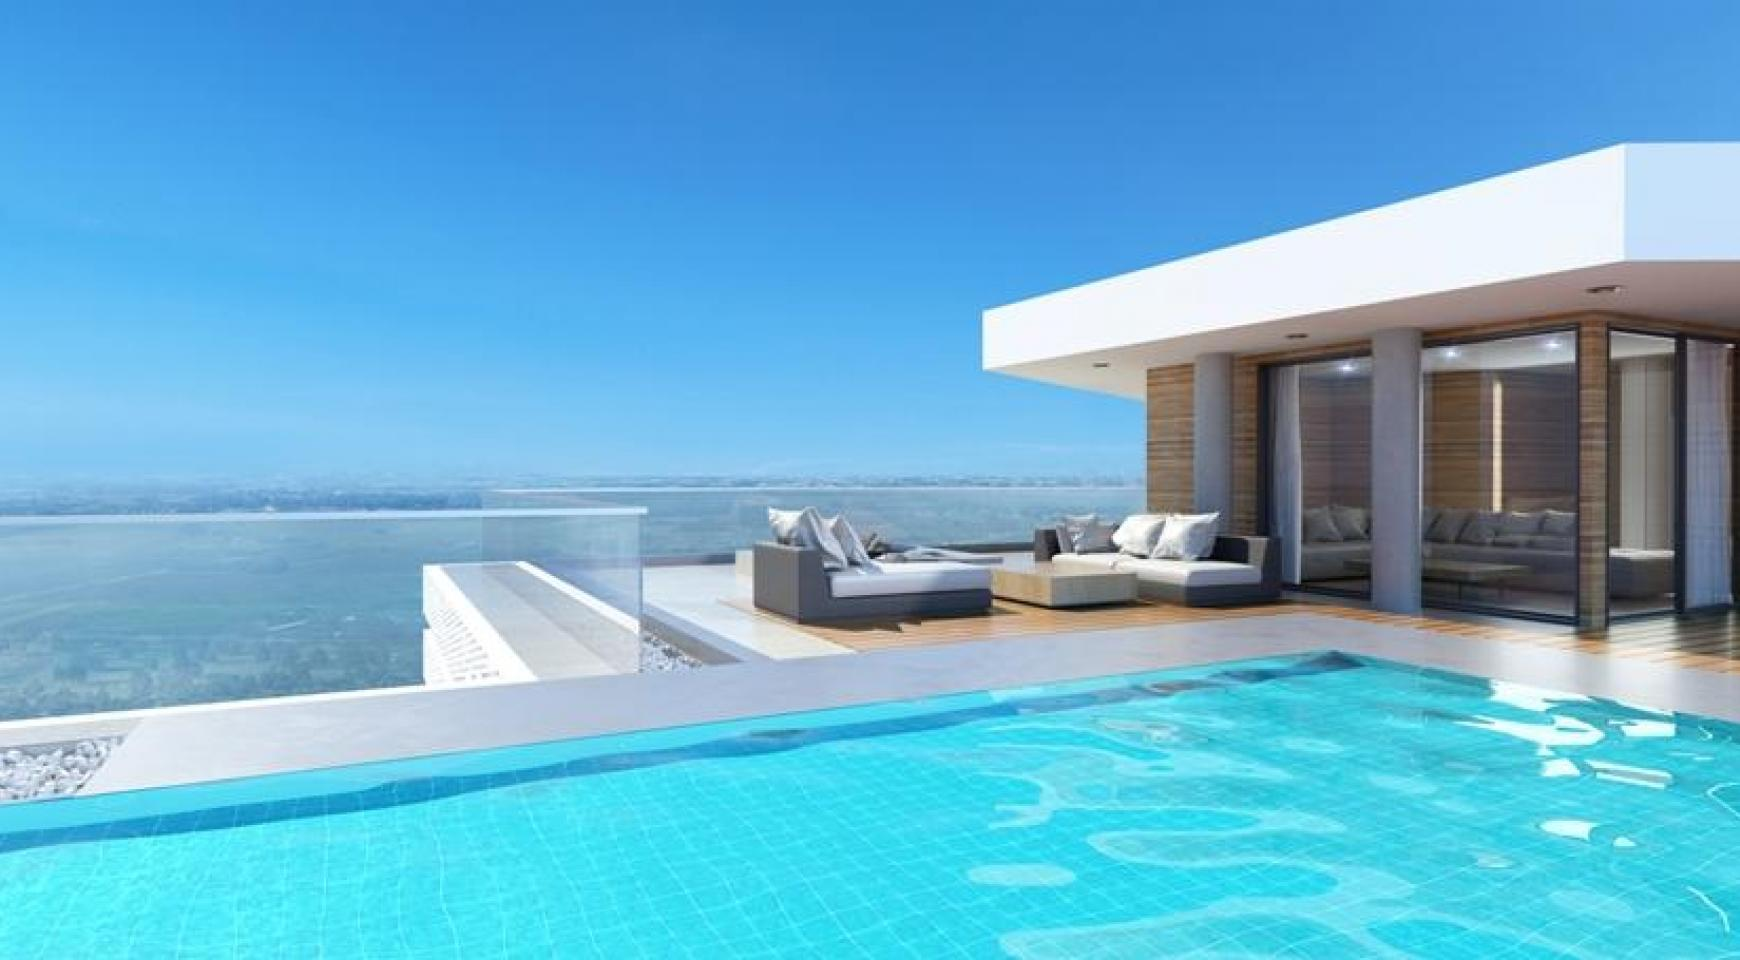 4 Bedroom Villa in a New Project by the Sea - 34